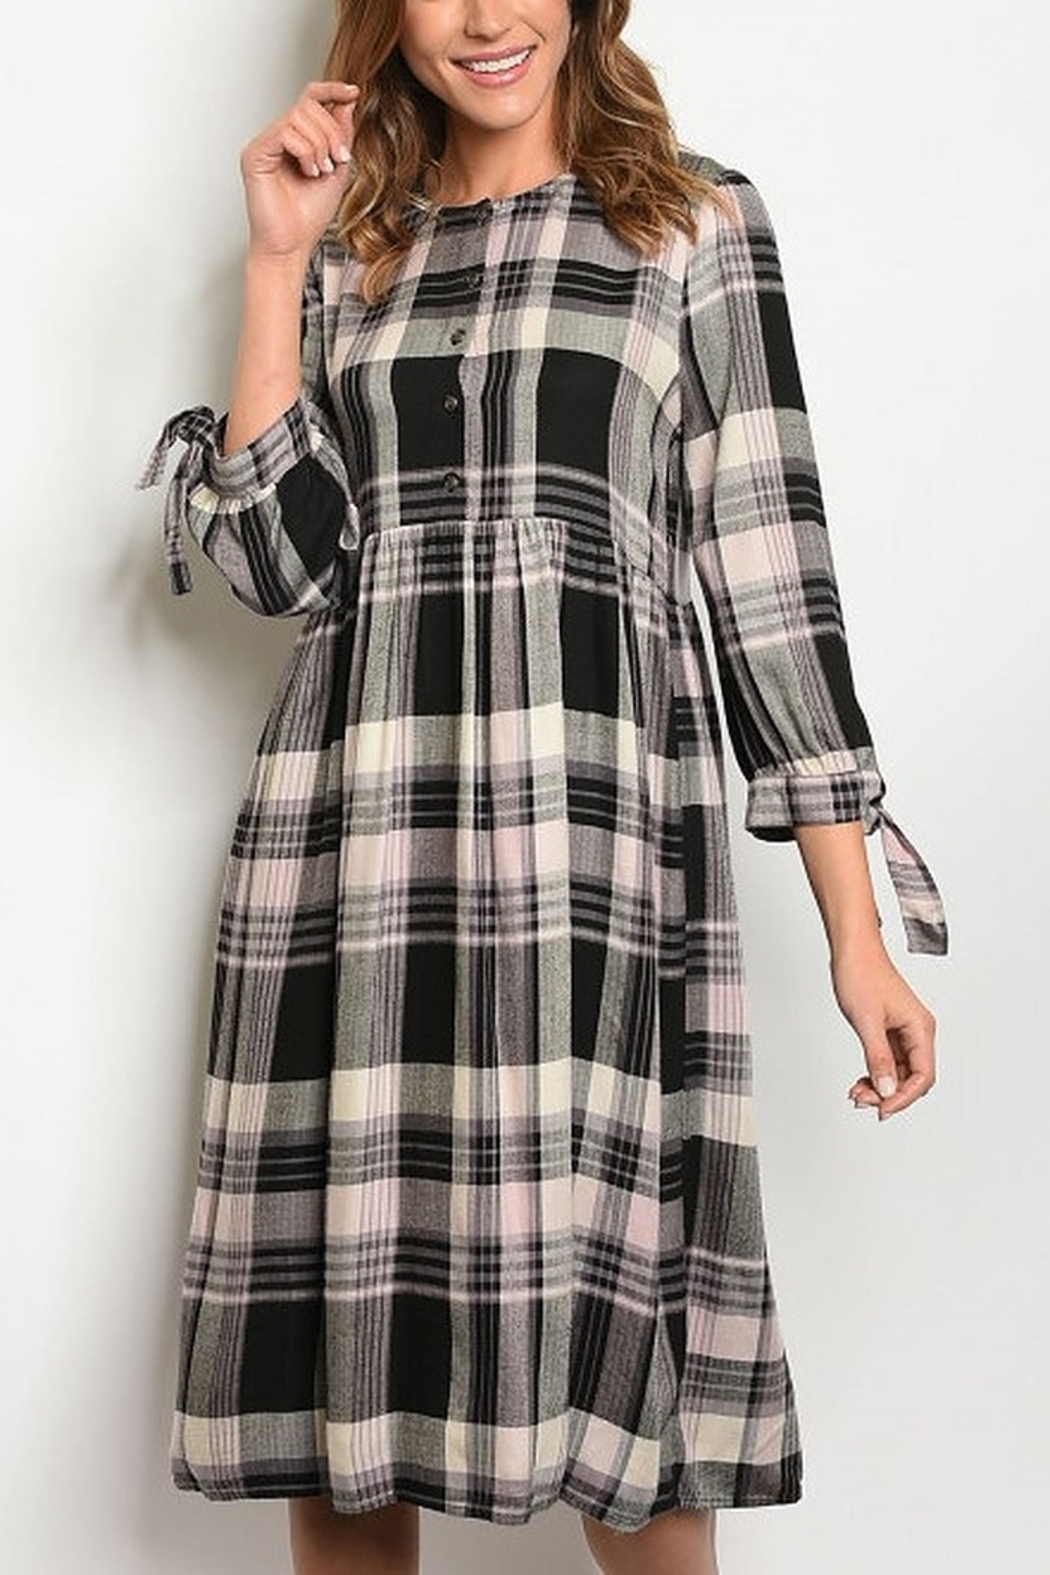 Lyn -Maree's Too Sweet Plaid Dress - Main Image